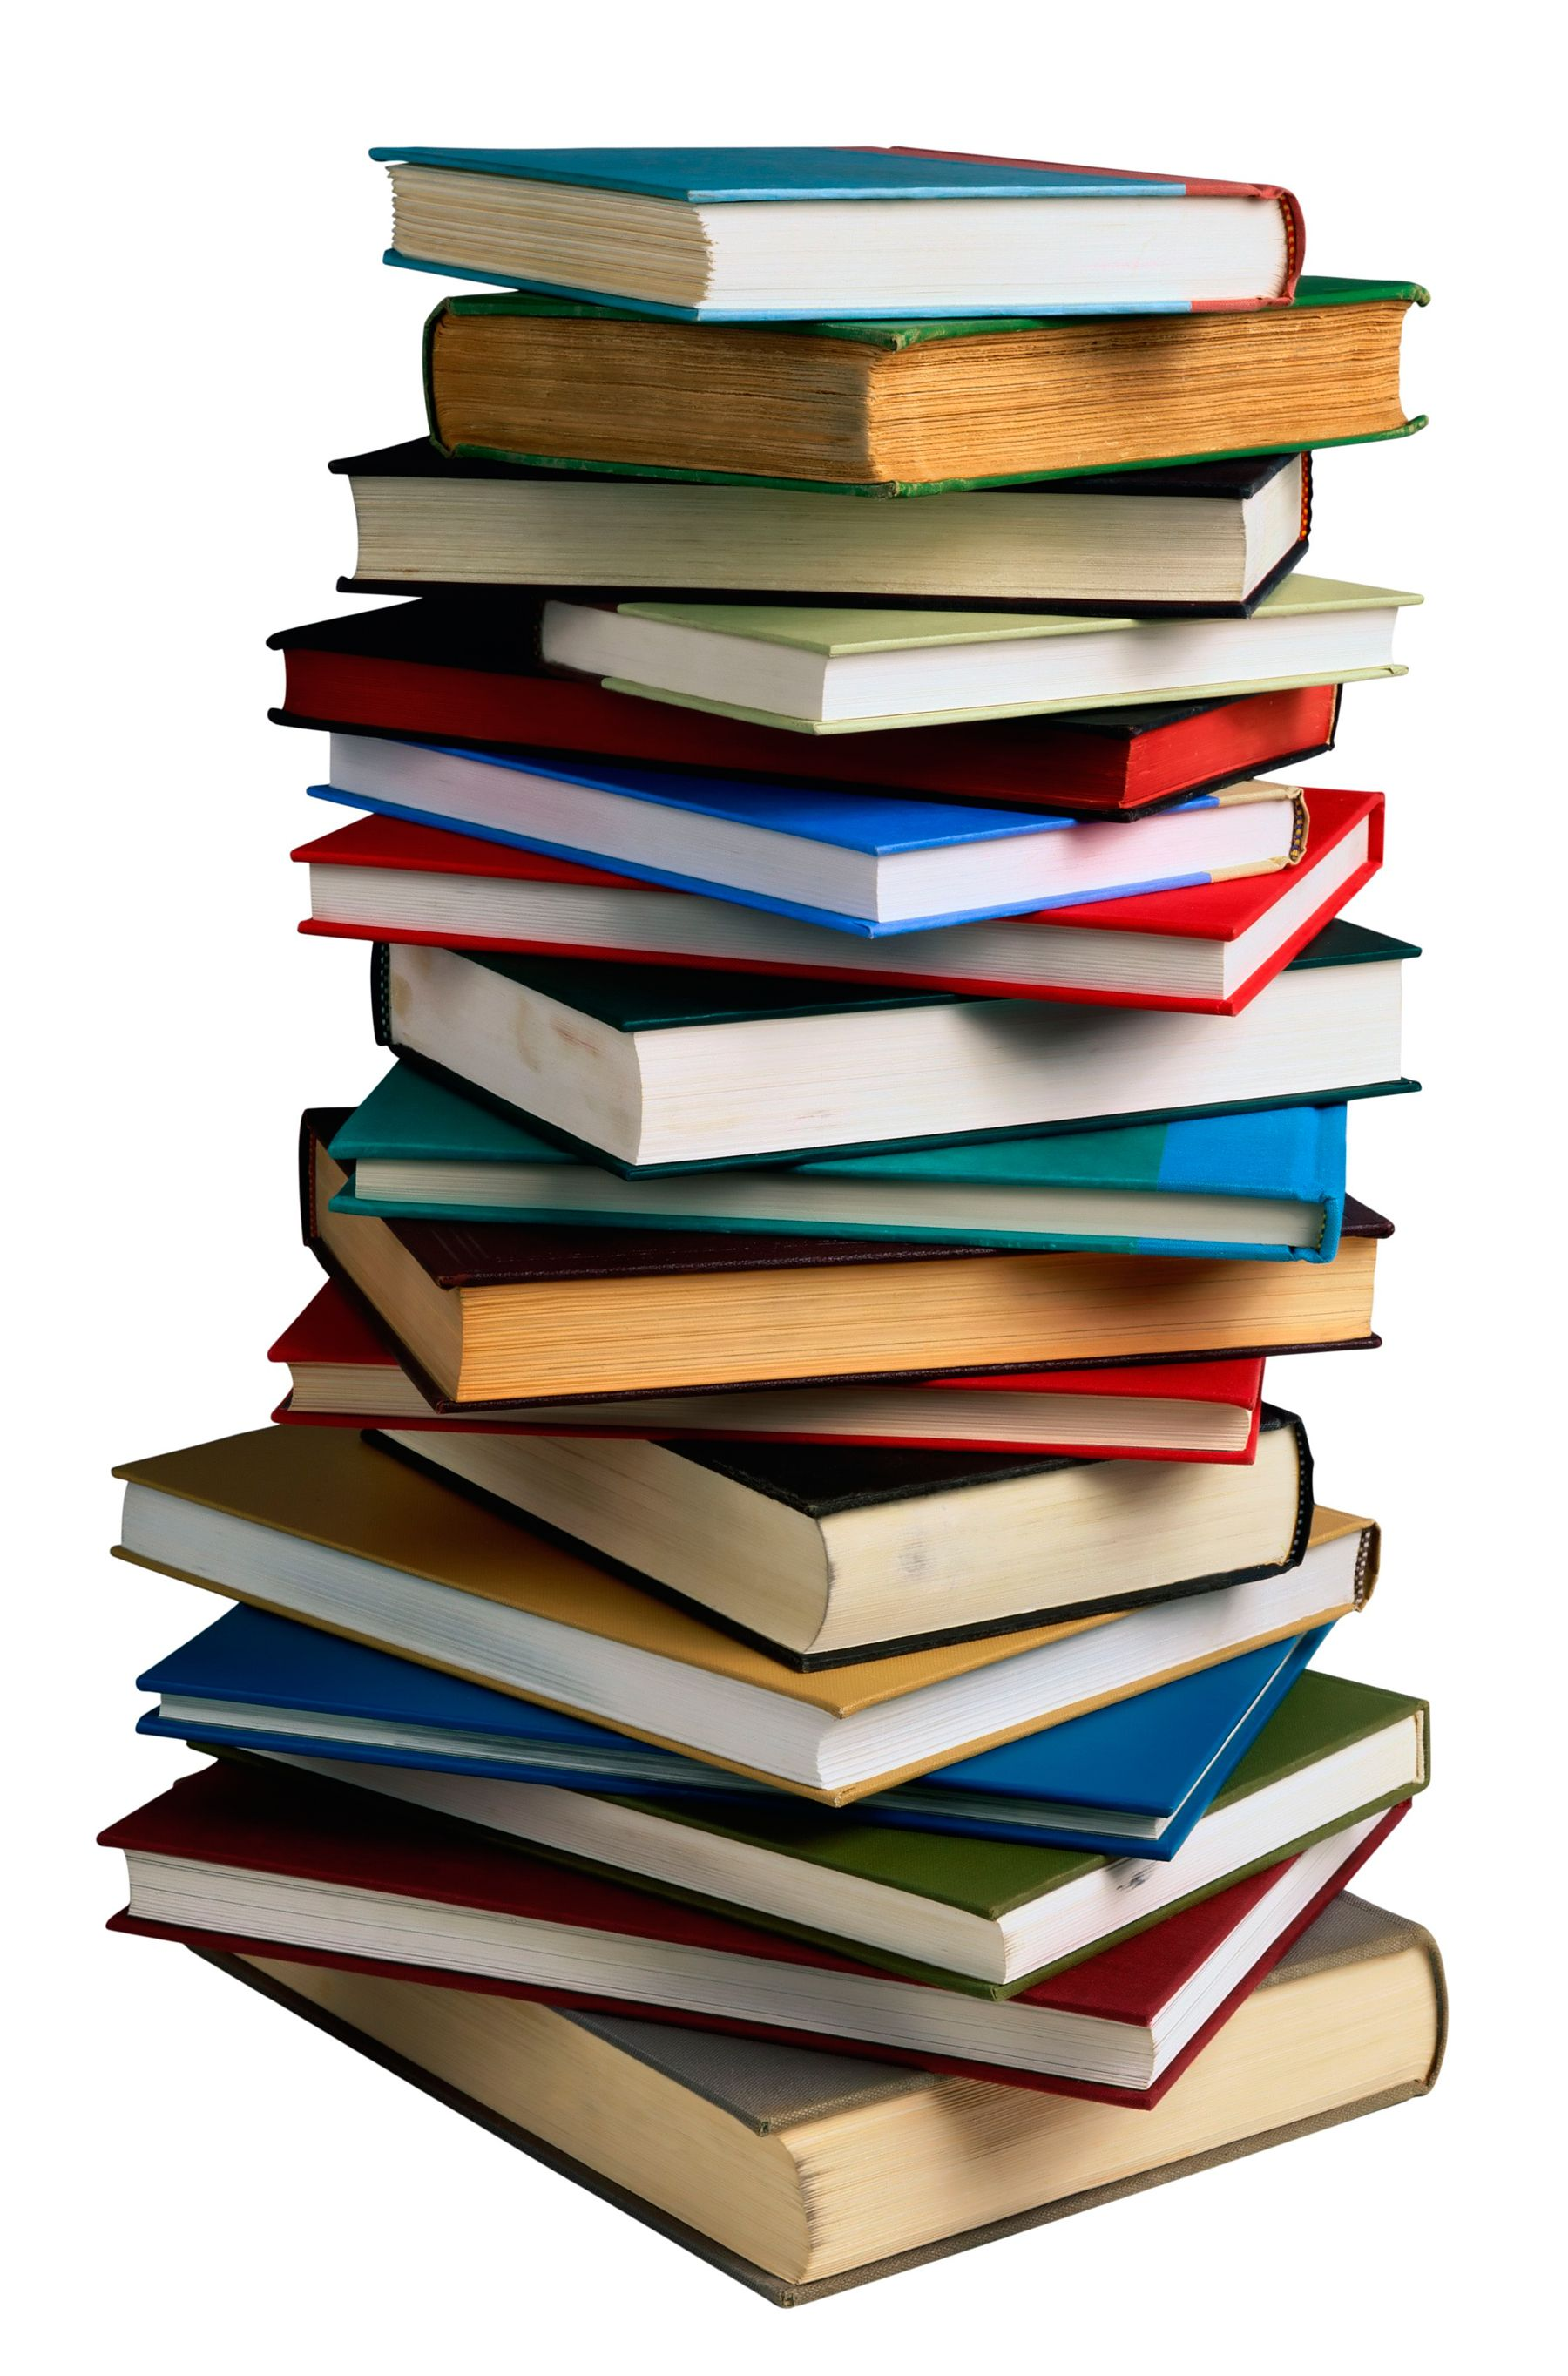 [Image: stack-of-books-images-4ib4Md7bT.jpeg]